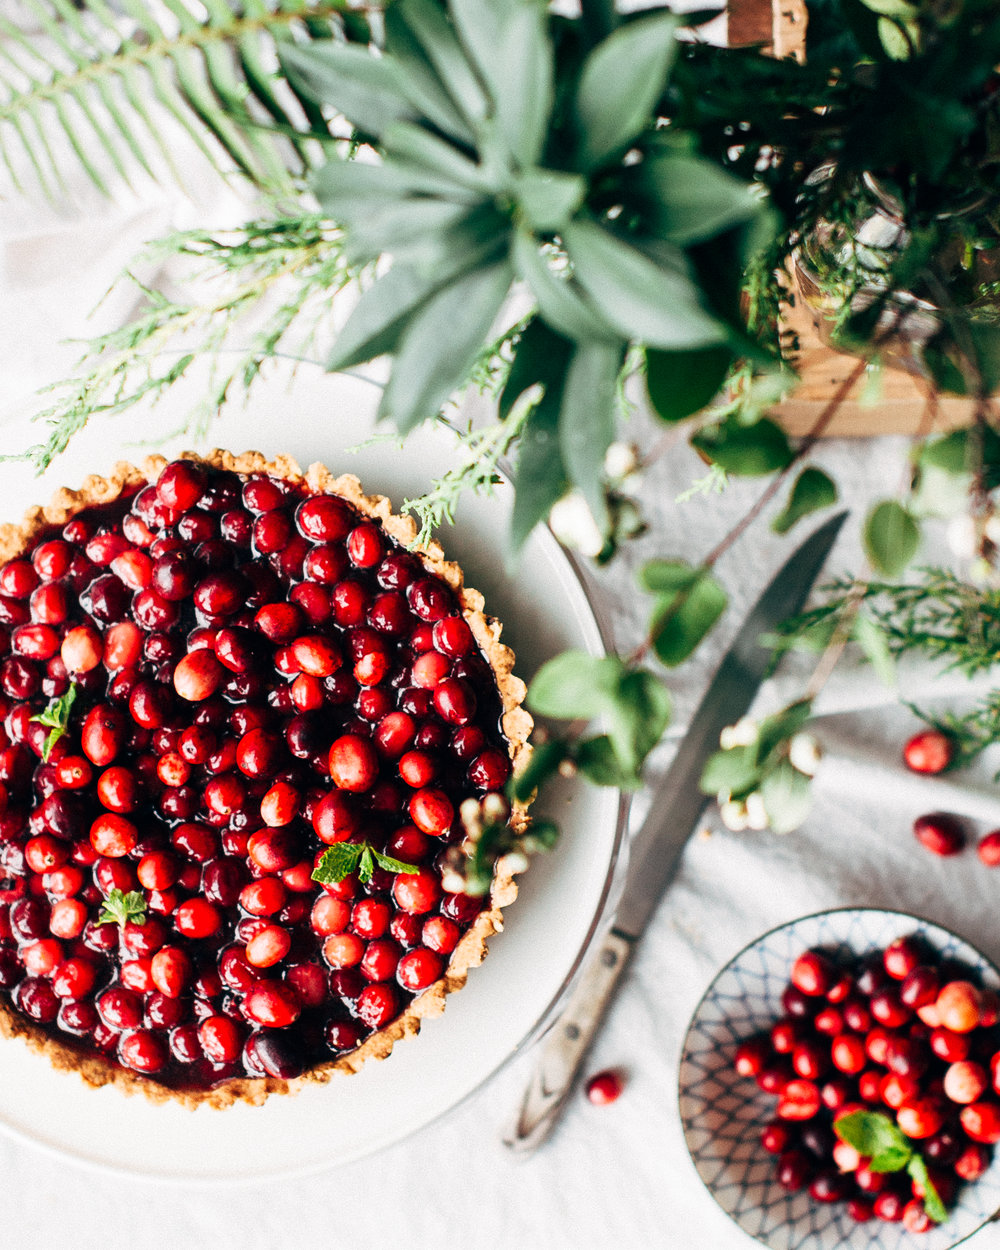 To be clear,  there is no such thing as cranberry (or strawberry, or banana ...) essential oil . But just looking at this picture reminds me of the amazing scents of holiday baking. And isn't it just pretty? :)